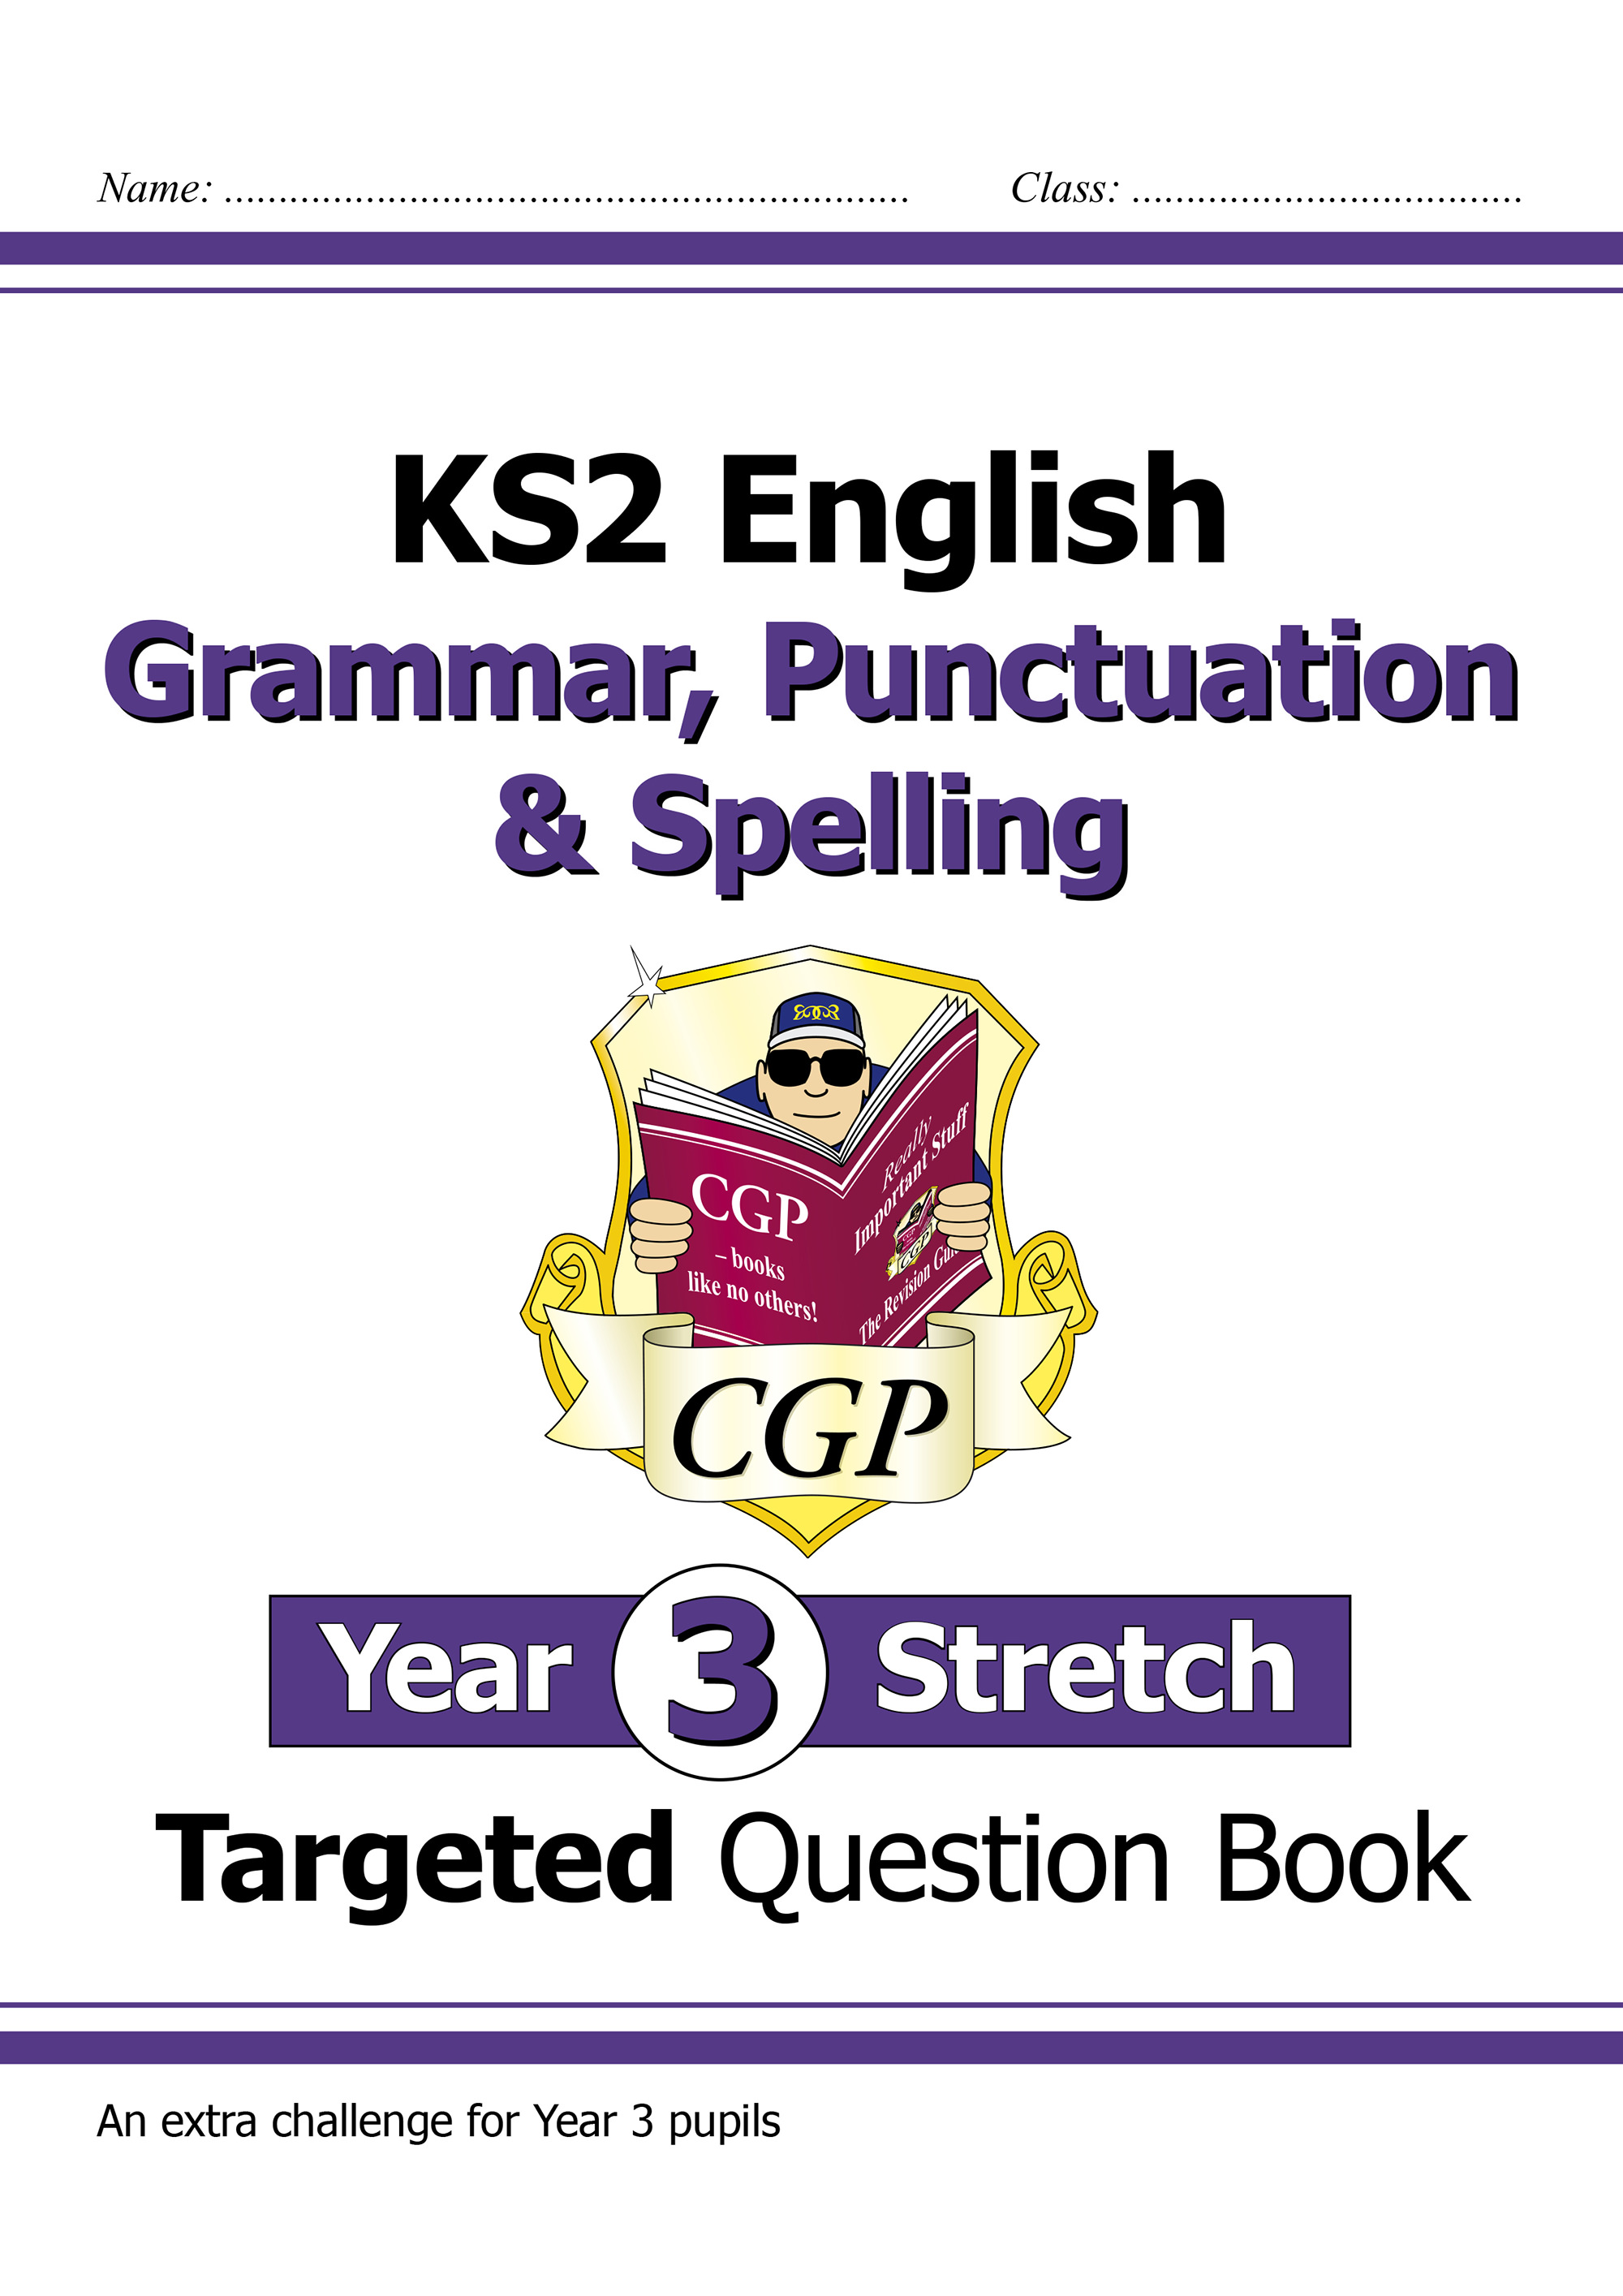 EG3HW21DK - KS2 English Targeted Question Book: Challenging Grammar, Punctuation & Spelling - Year 3